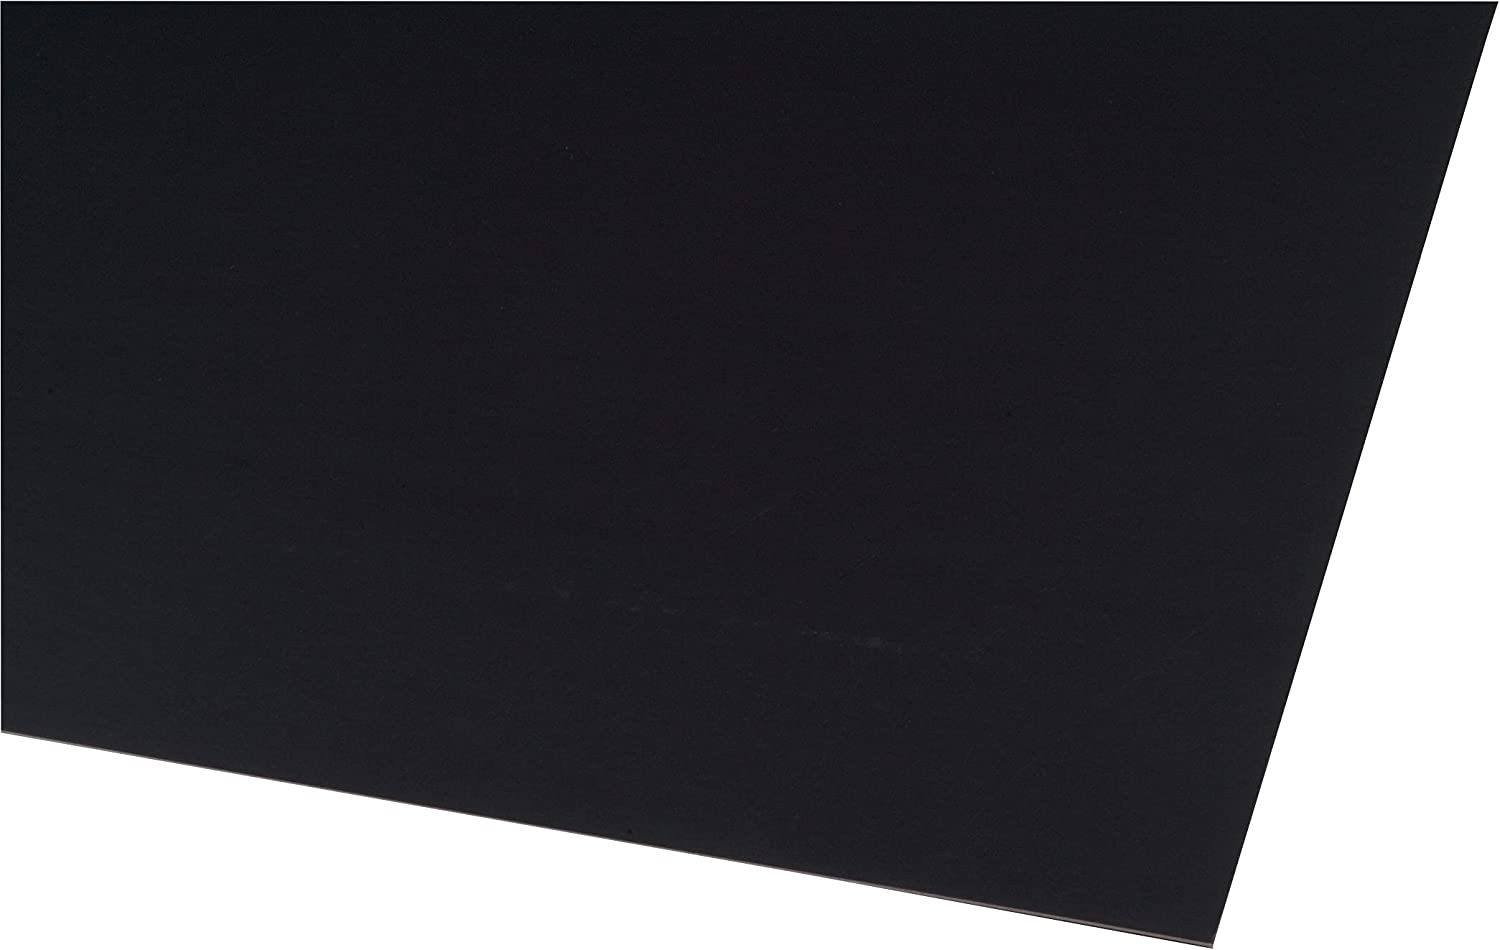 Sales of SALE items from new works Crescent Melton Mounting Board High quality 28 x of Inches Black Pack 44 1